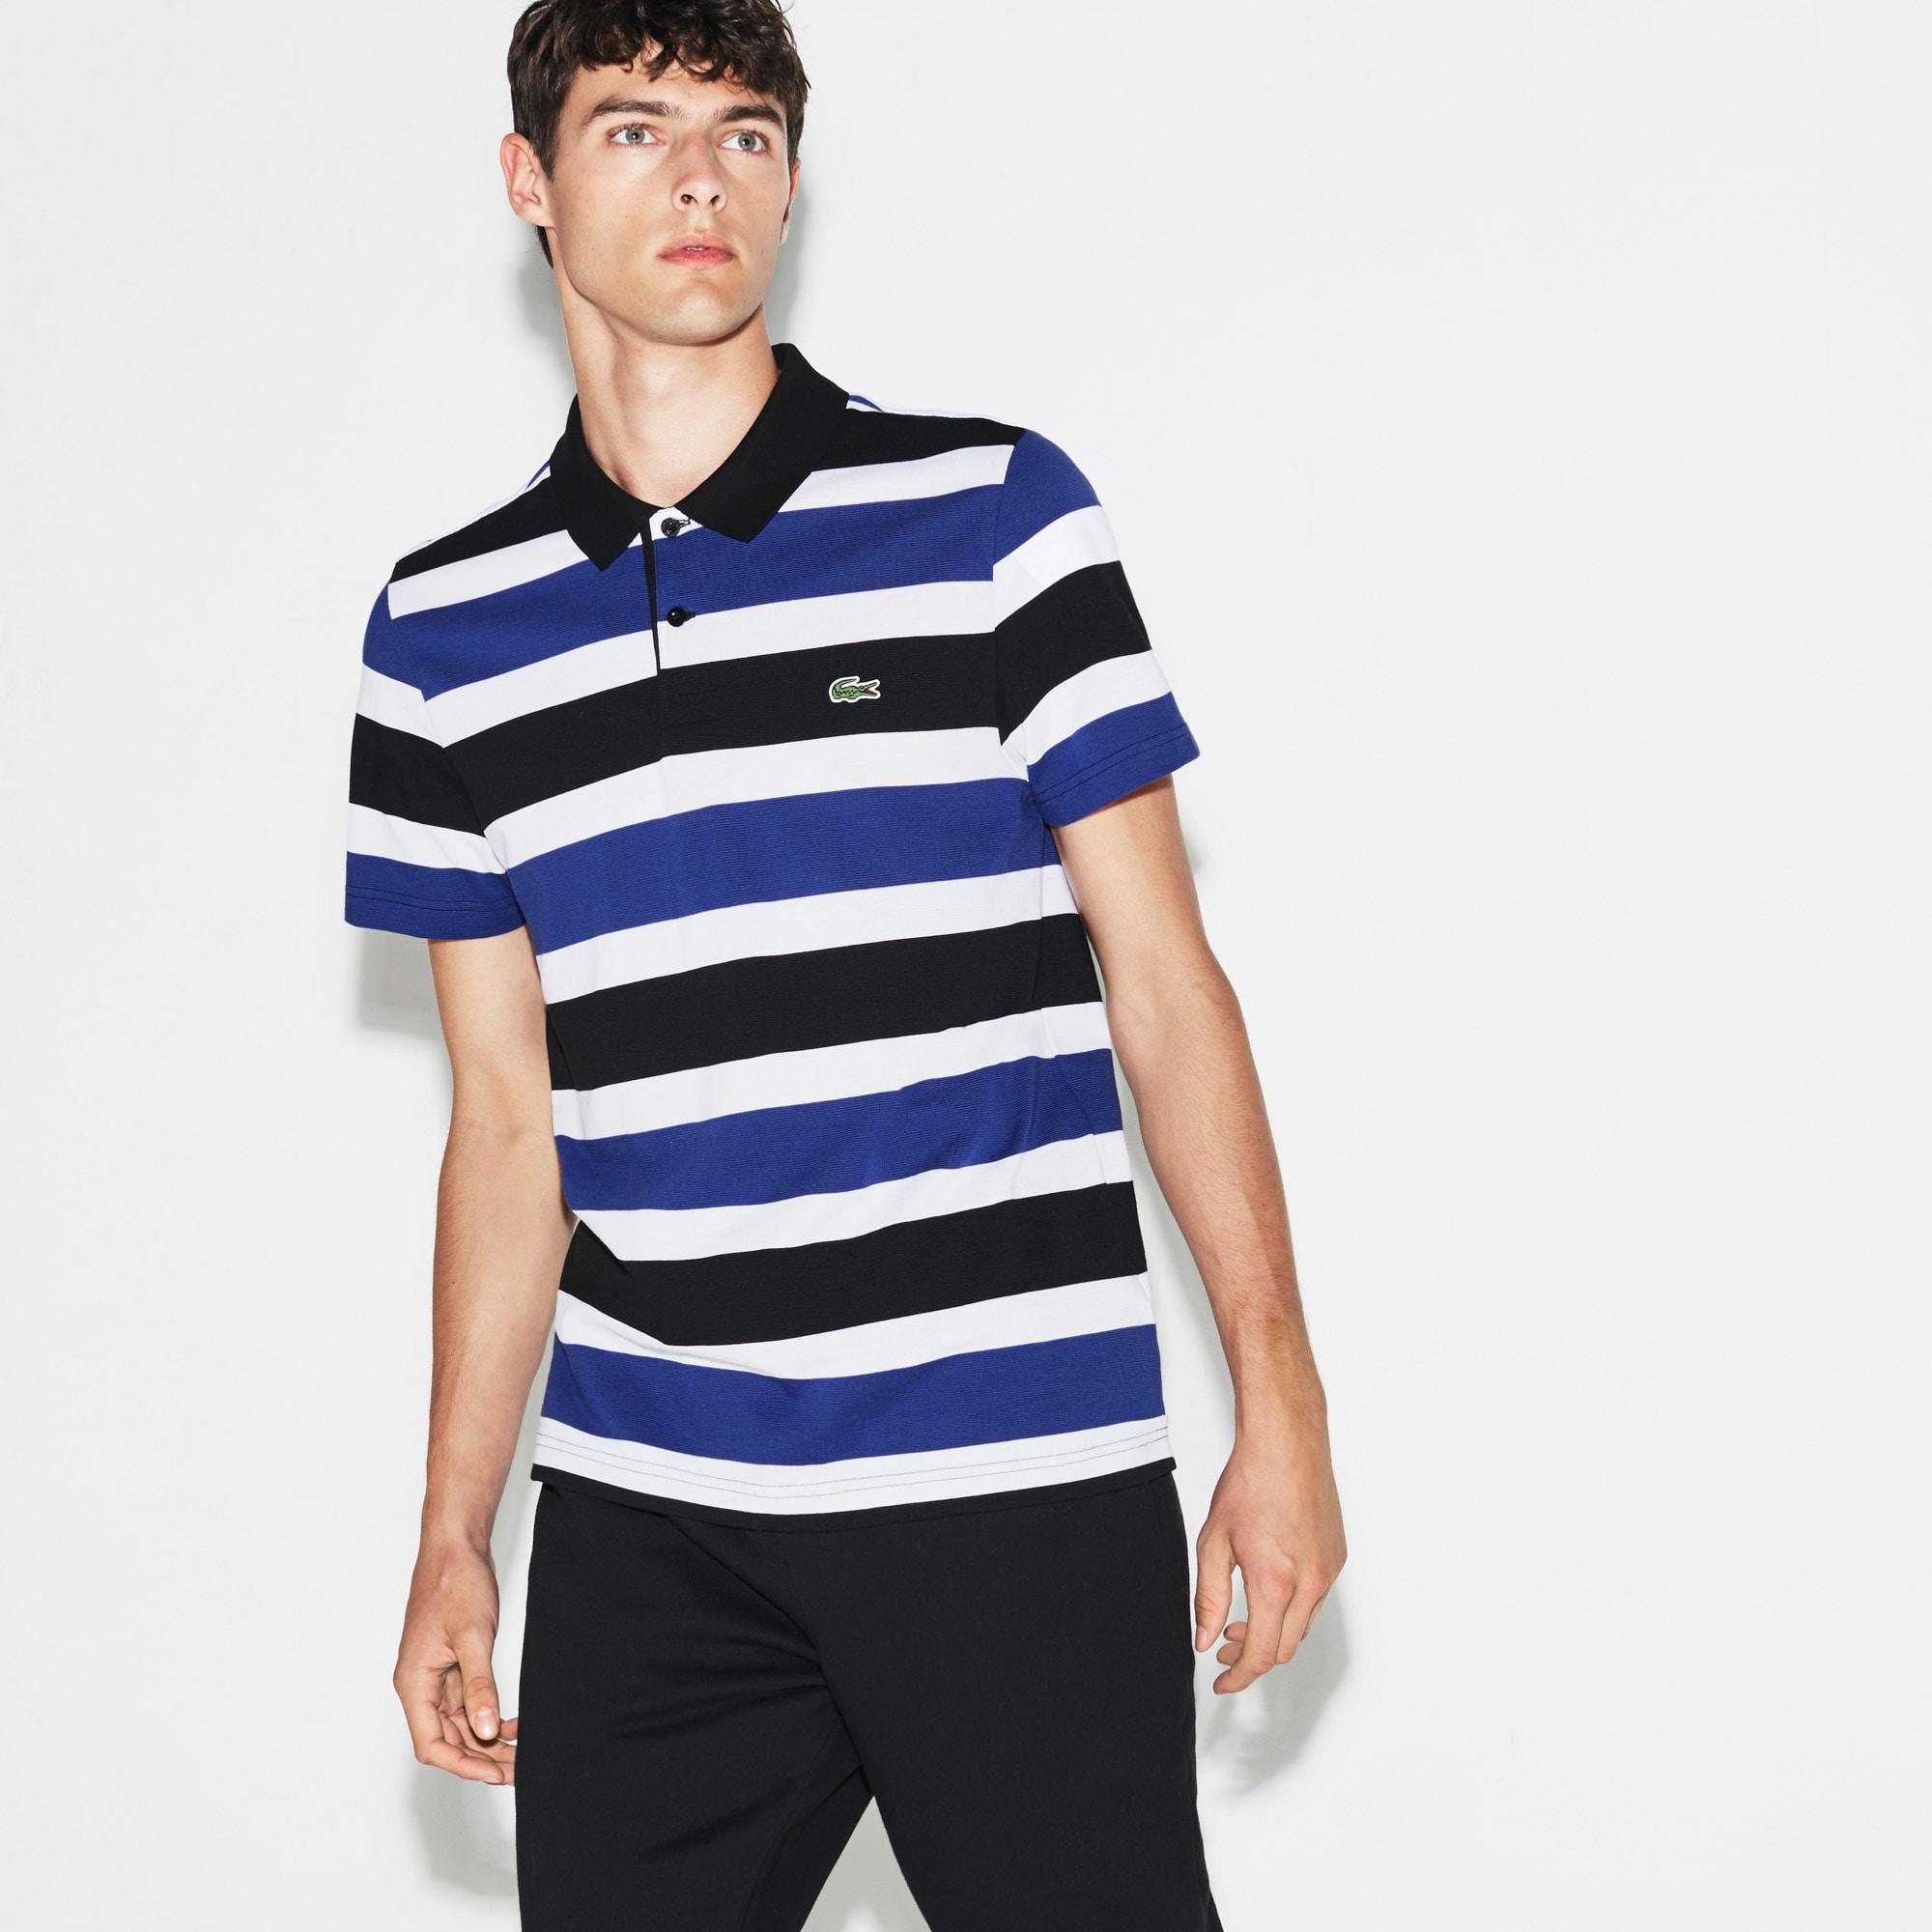 Men's Lacoste SPORT Tennis Ultra-Light Striped Knit Polo Shirt